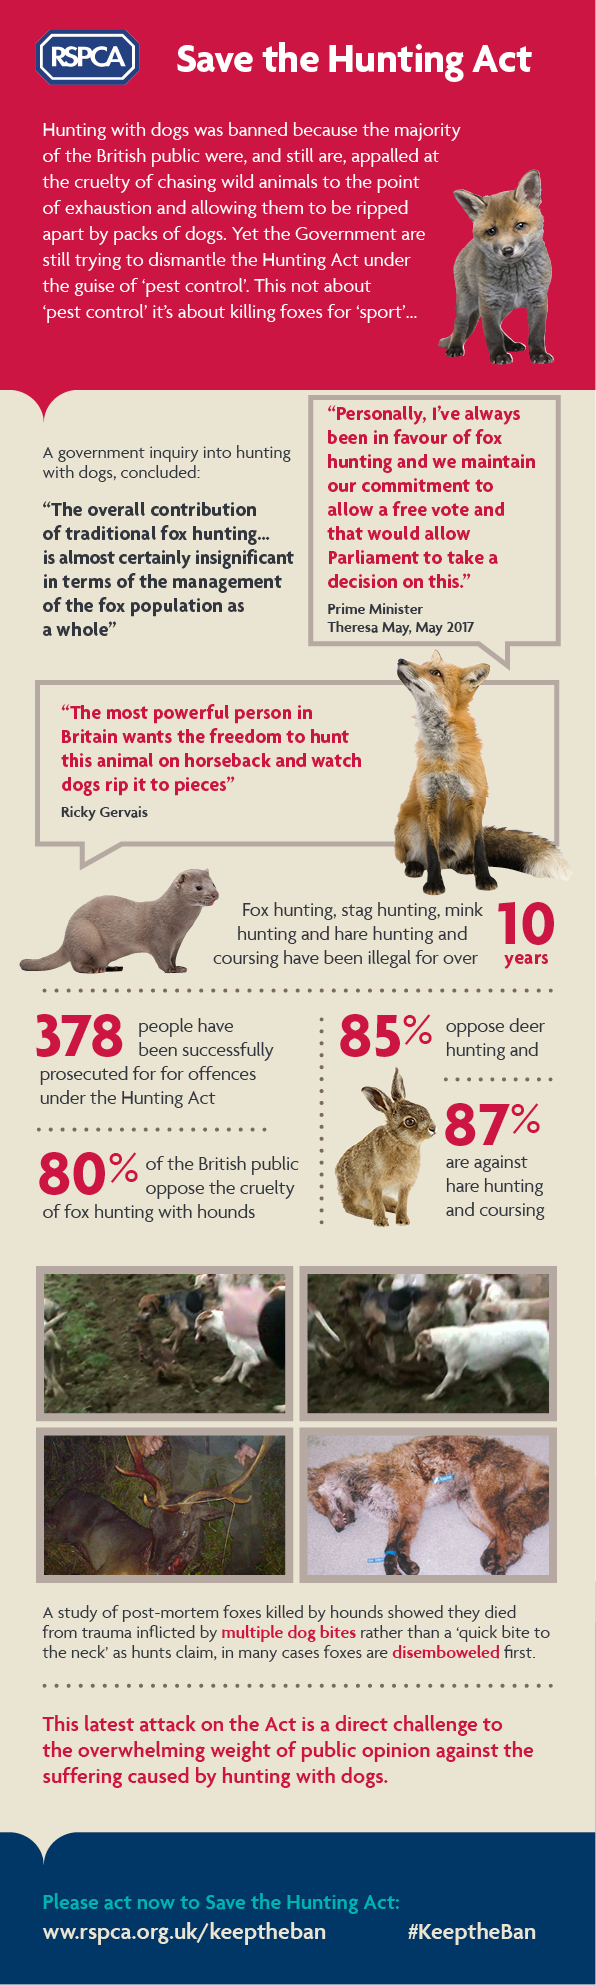 Save the hunting act Infographic